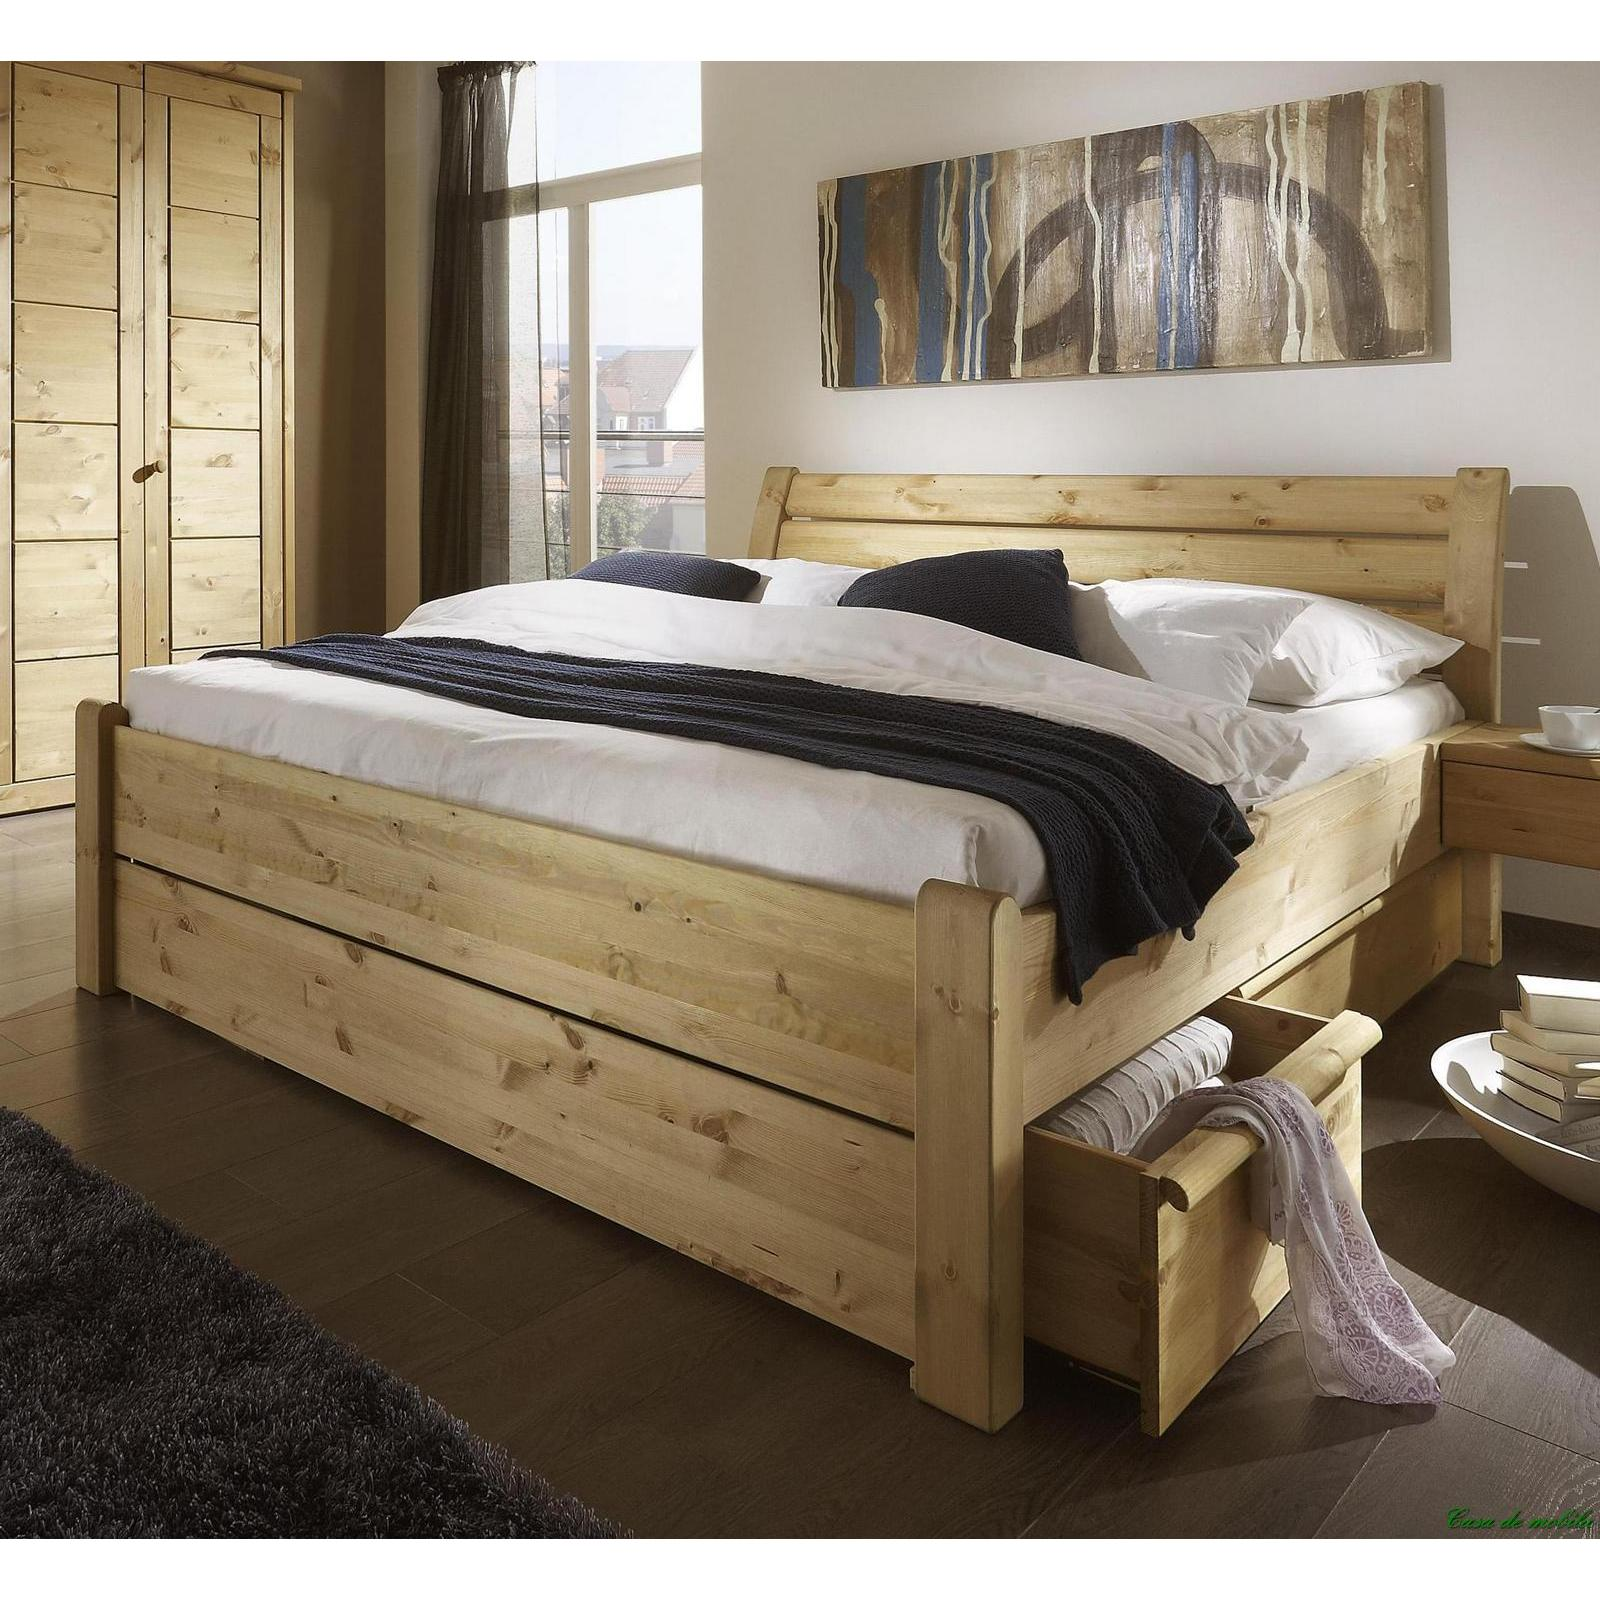 doppelbett betten mit schubladen 140x200 holz kiefer gelaugt ge lt greta. Black Bedroom Furniture Sets. Home Design Ideas